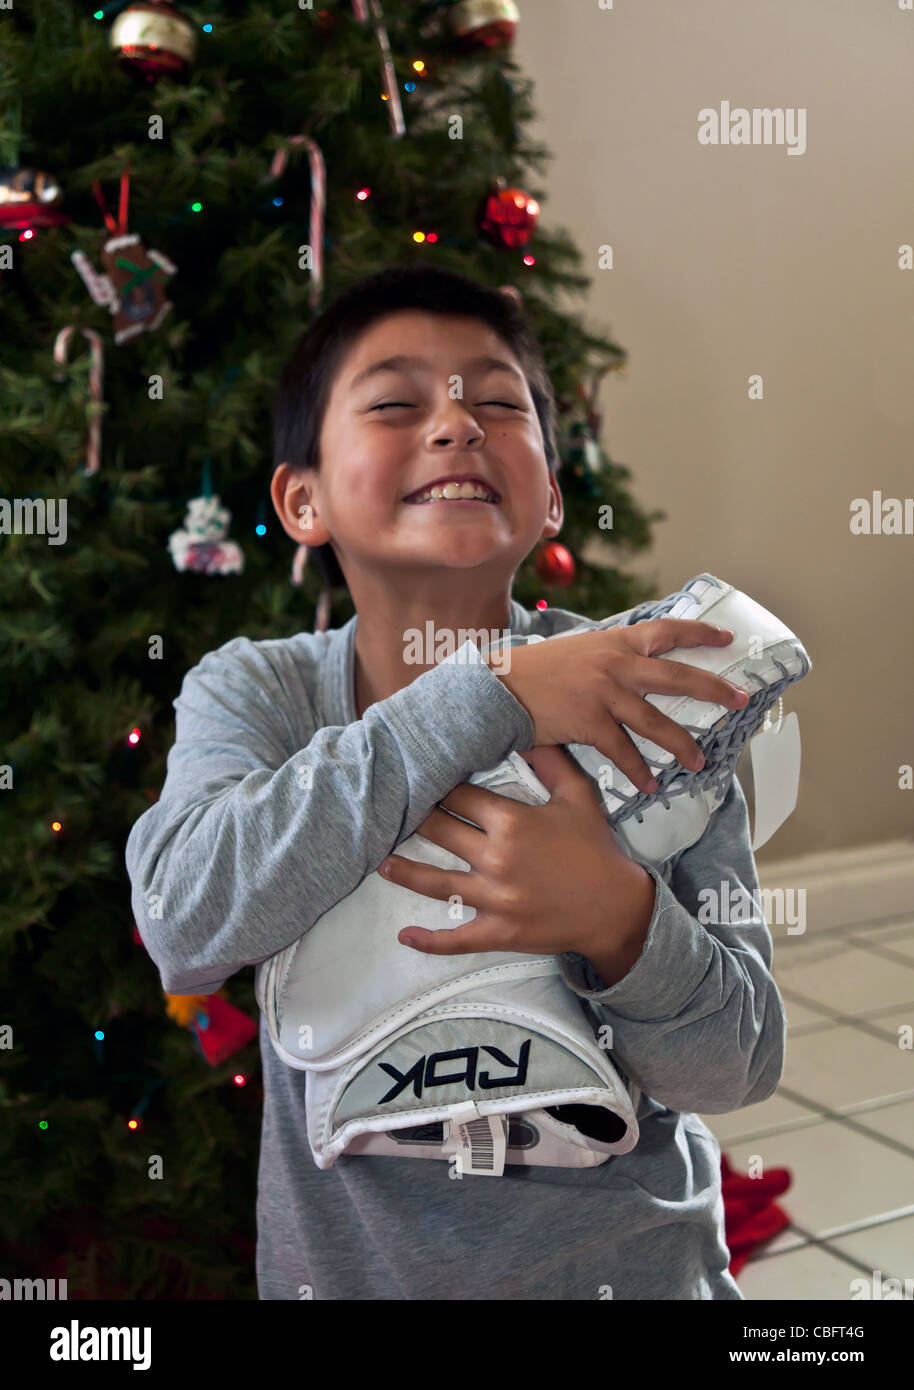 interracial multicultural Hispanic American child receives his gift goal tenders goaly hockey glove Christmas.present - Stock Image